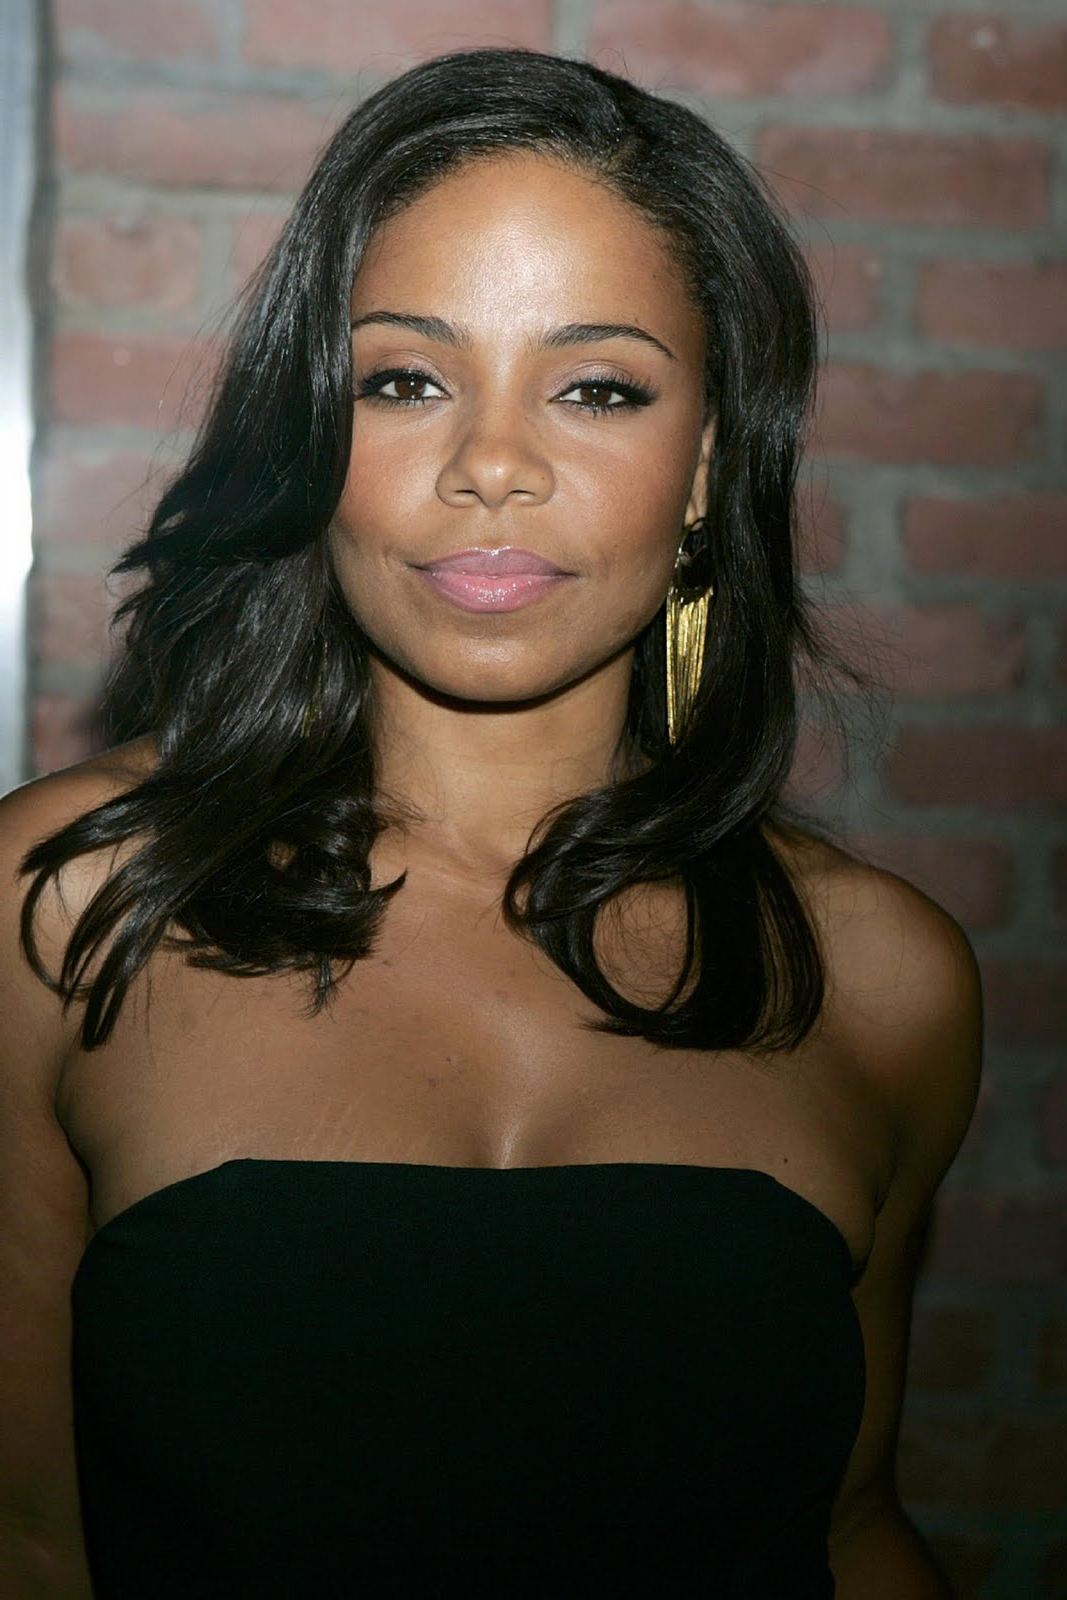 Sanaa Lathan Medium Length Black Curly Hairstyles (View 15 of 20)